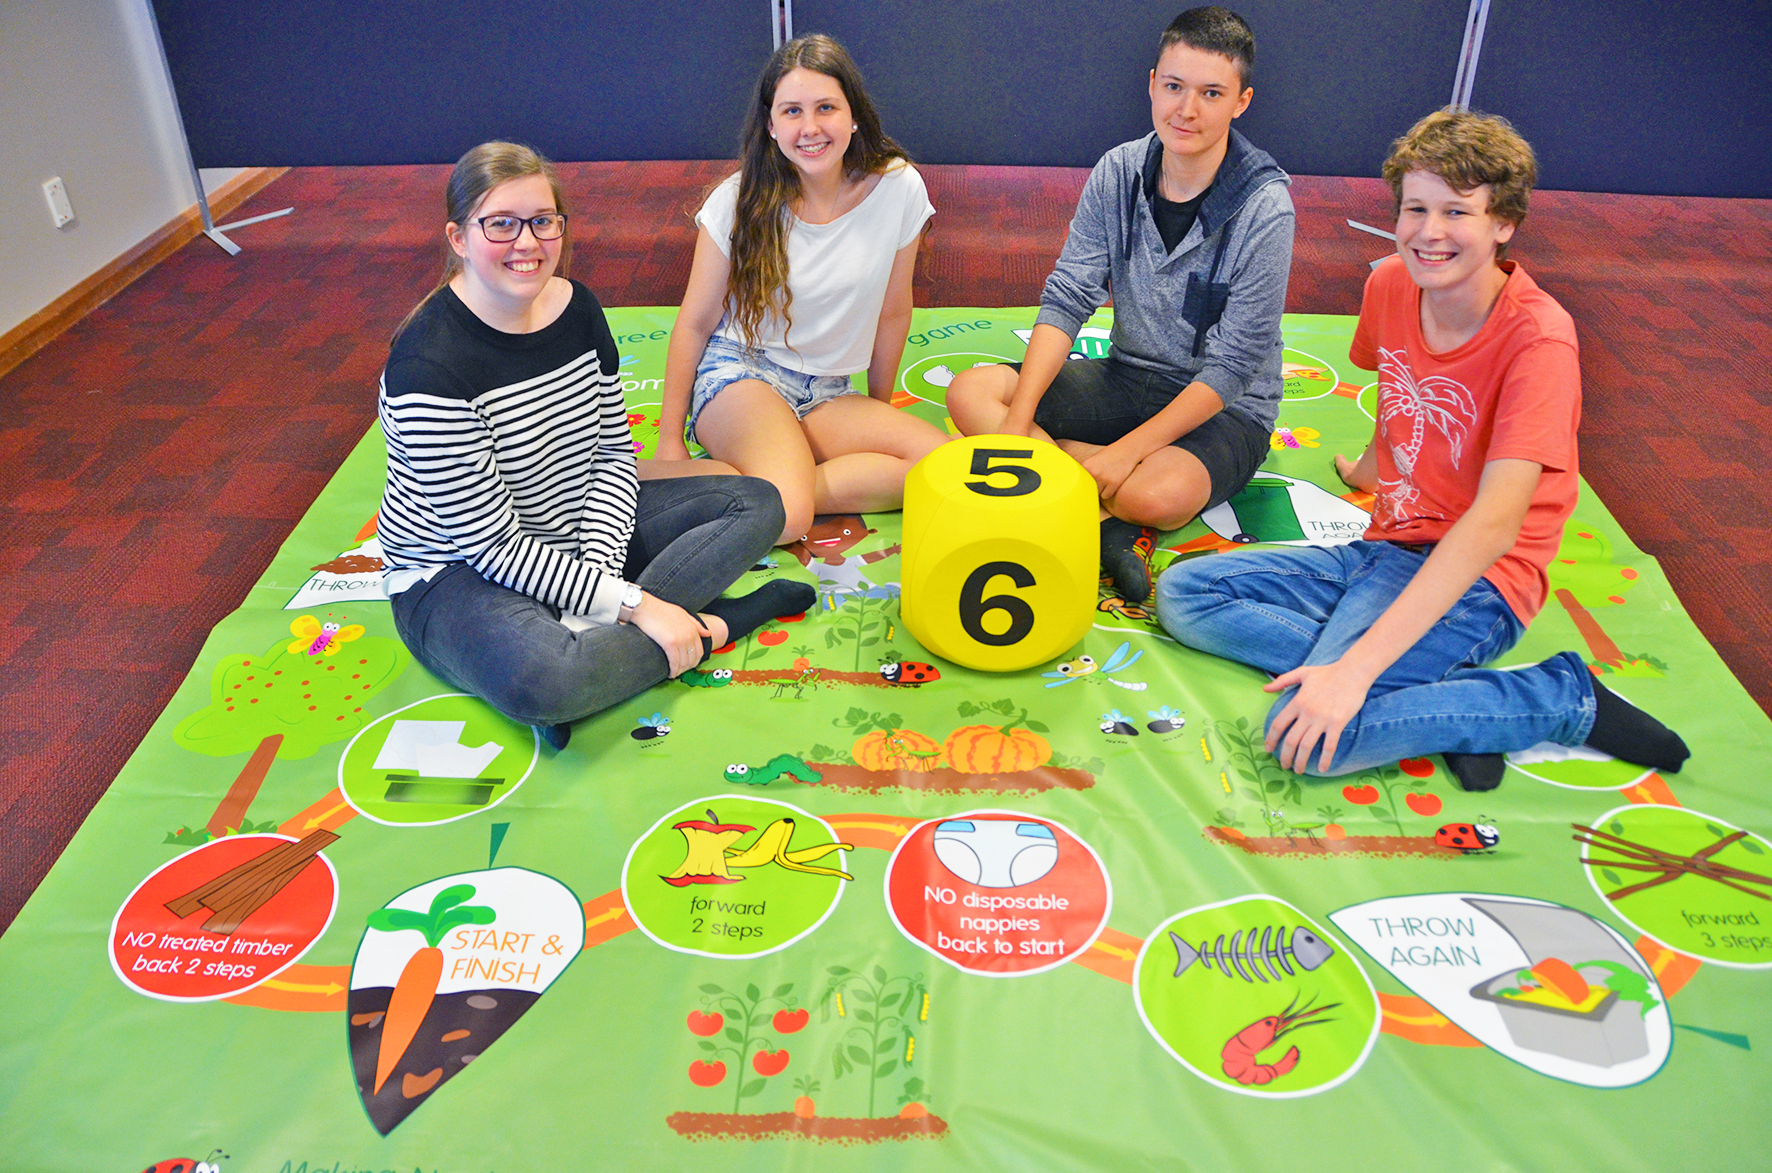 TAFE students organics recycling game